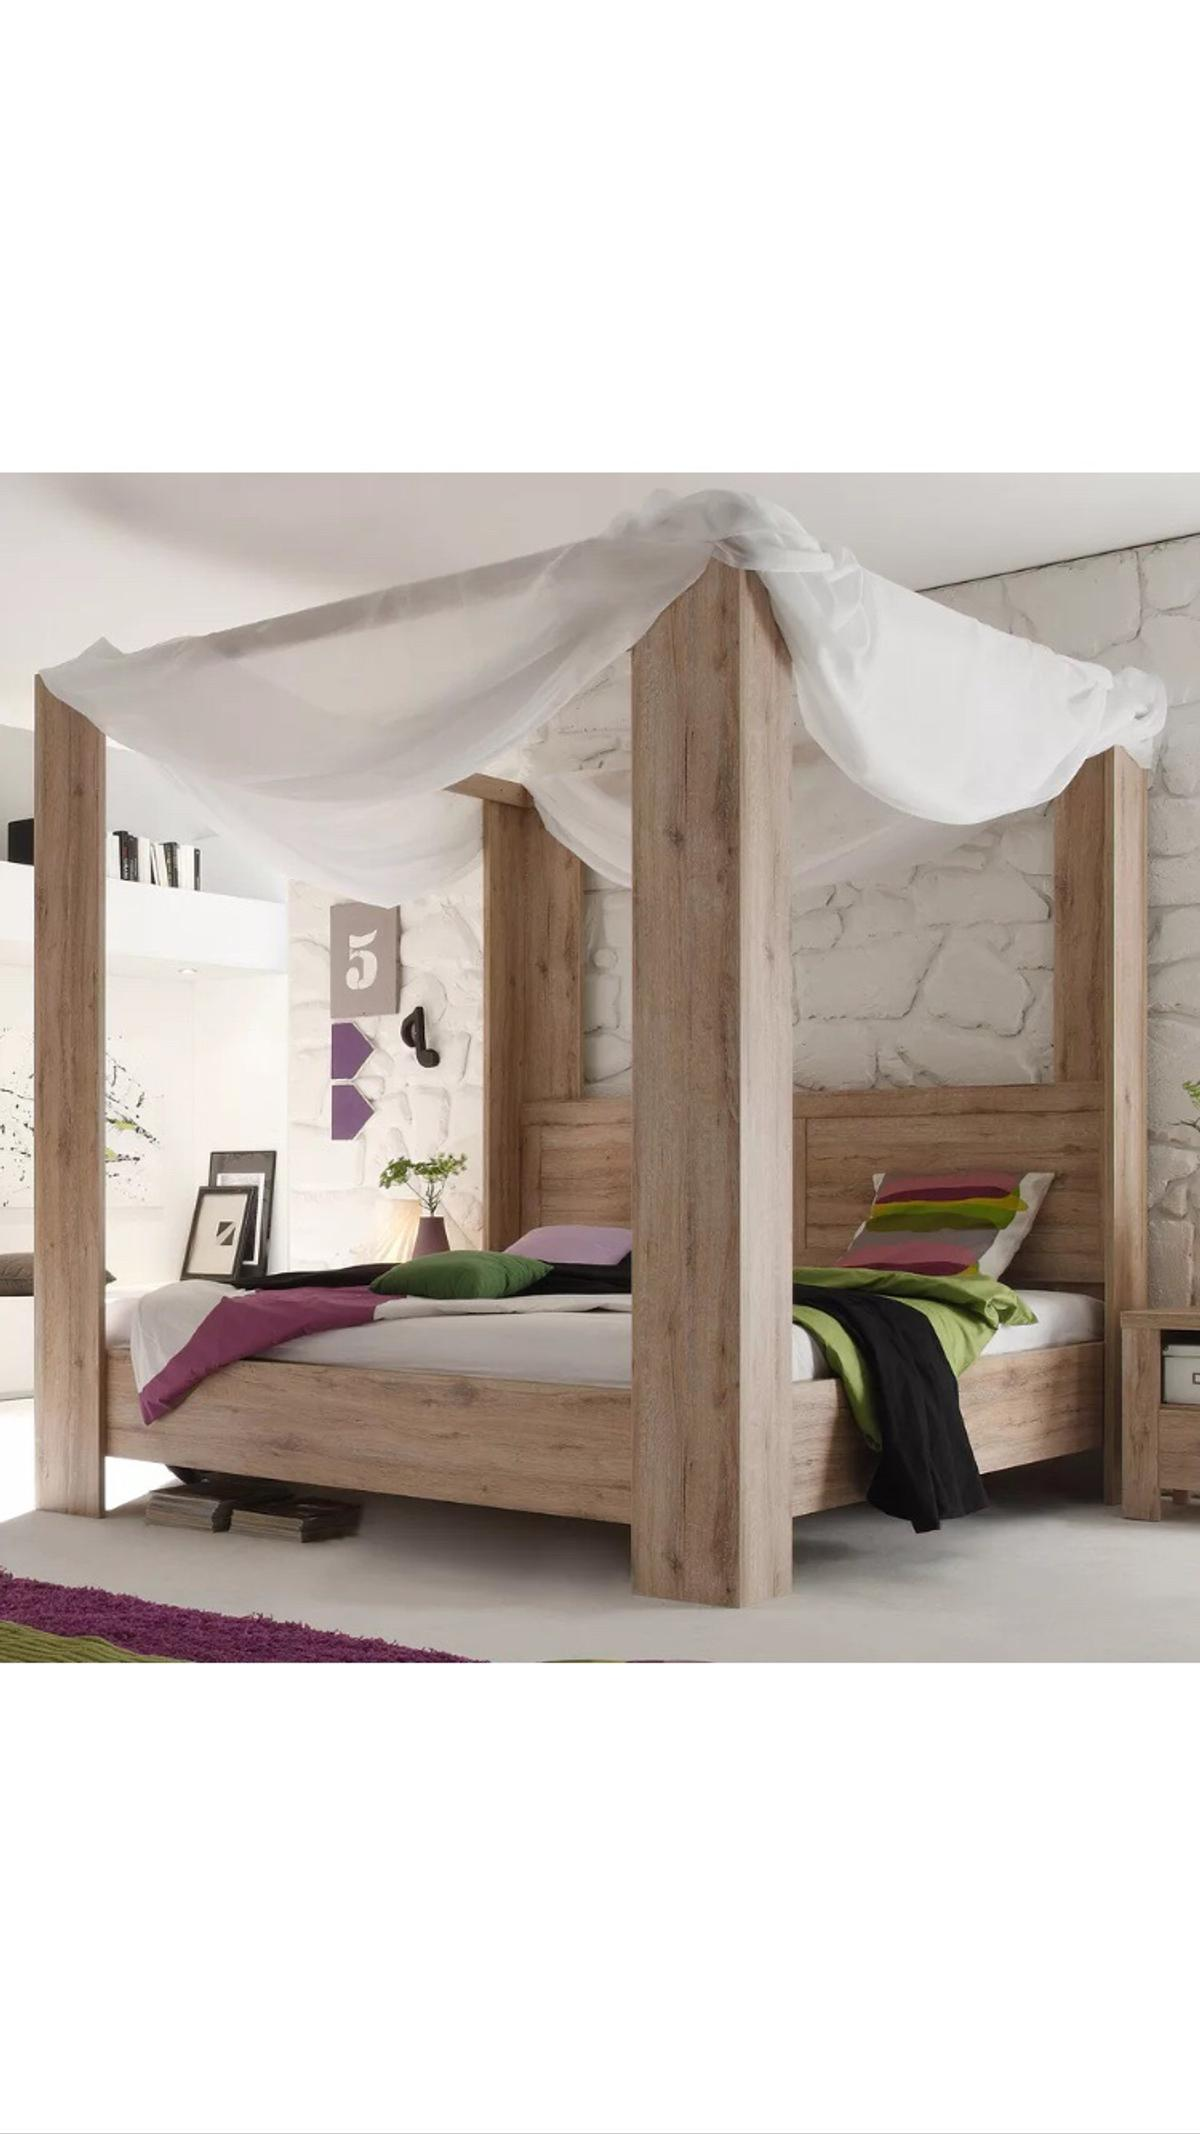 Himmelbett Holz 180x200 Himmelbett 180 X 200 Cm Eiche San Remo Hell In 50354 Hürth For €350.00 For Sale | Shpock